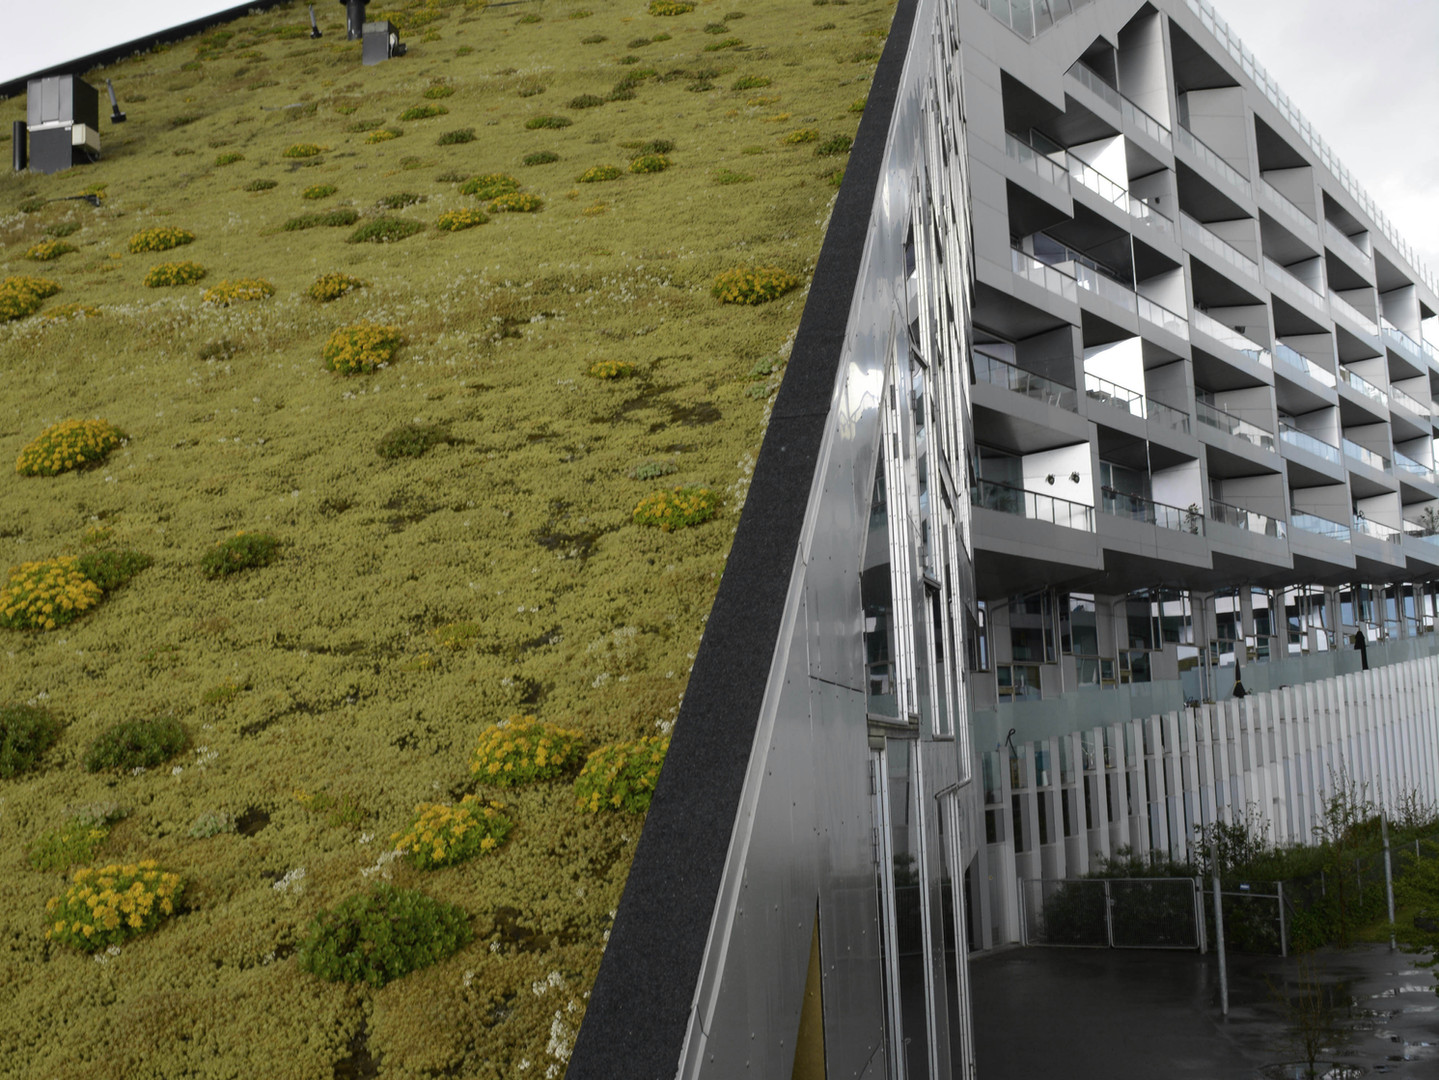 Side view of a buildings' vertical garden and front entrance